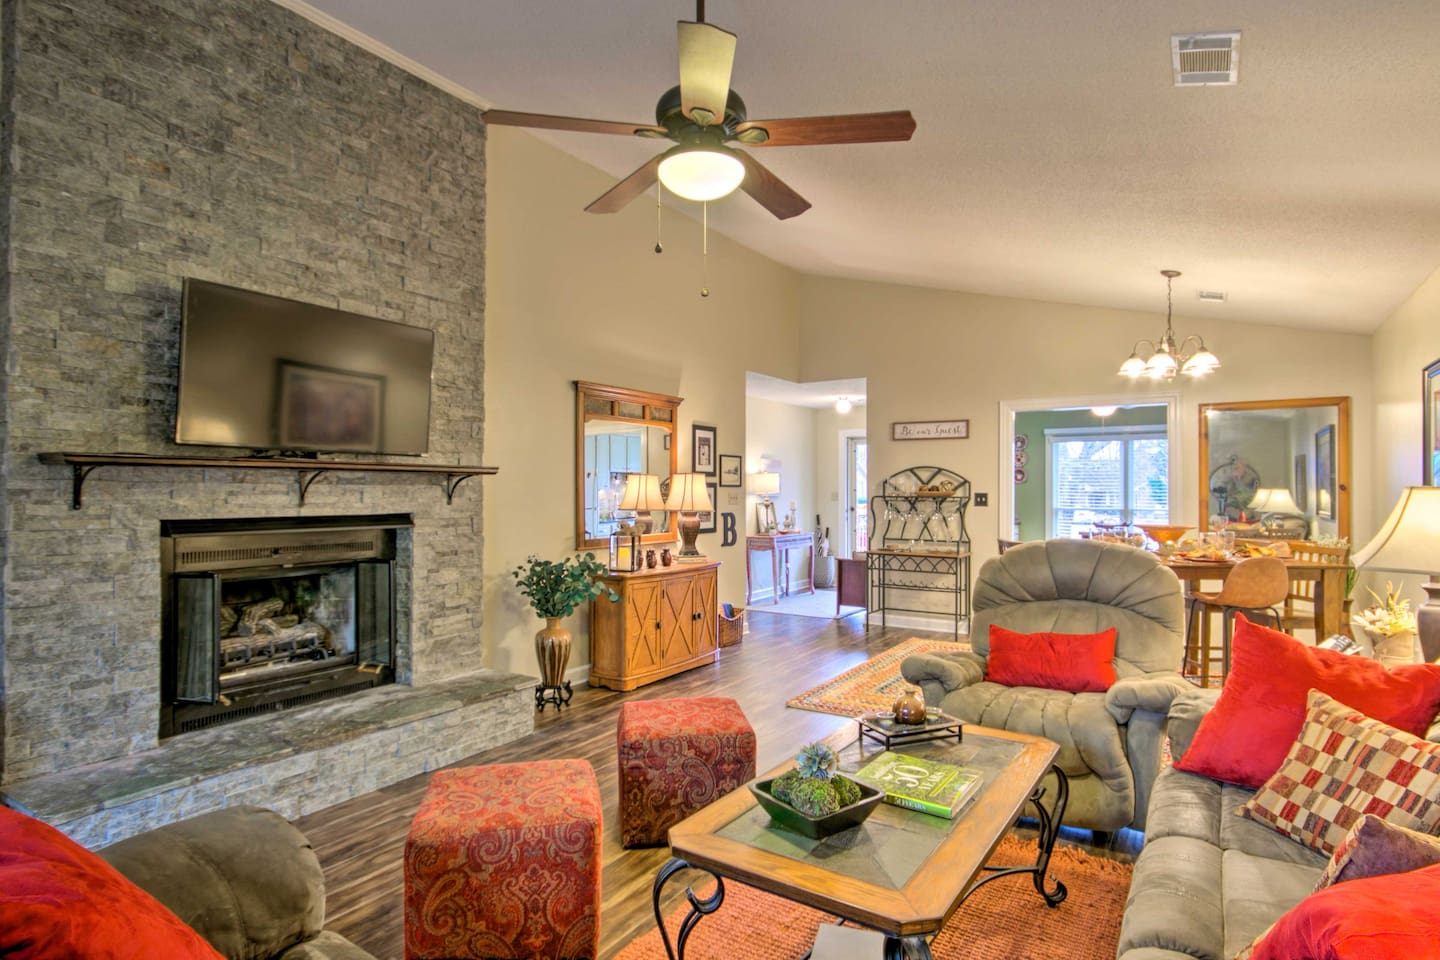 Make yourself at home in this Greenwood vacation rental condo!